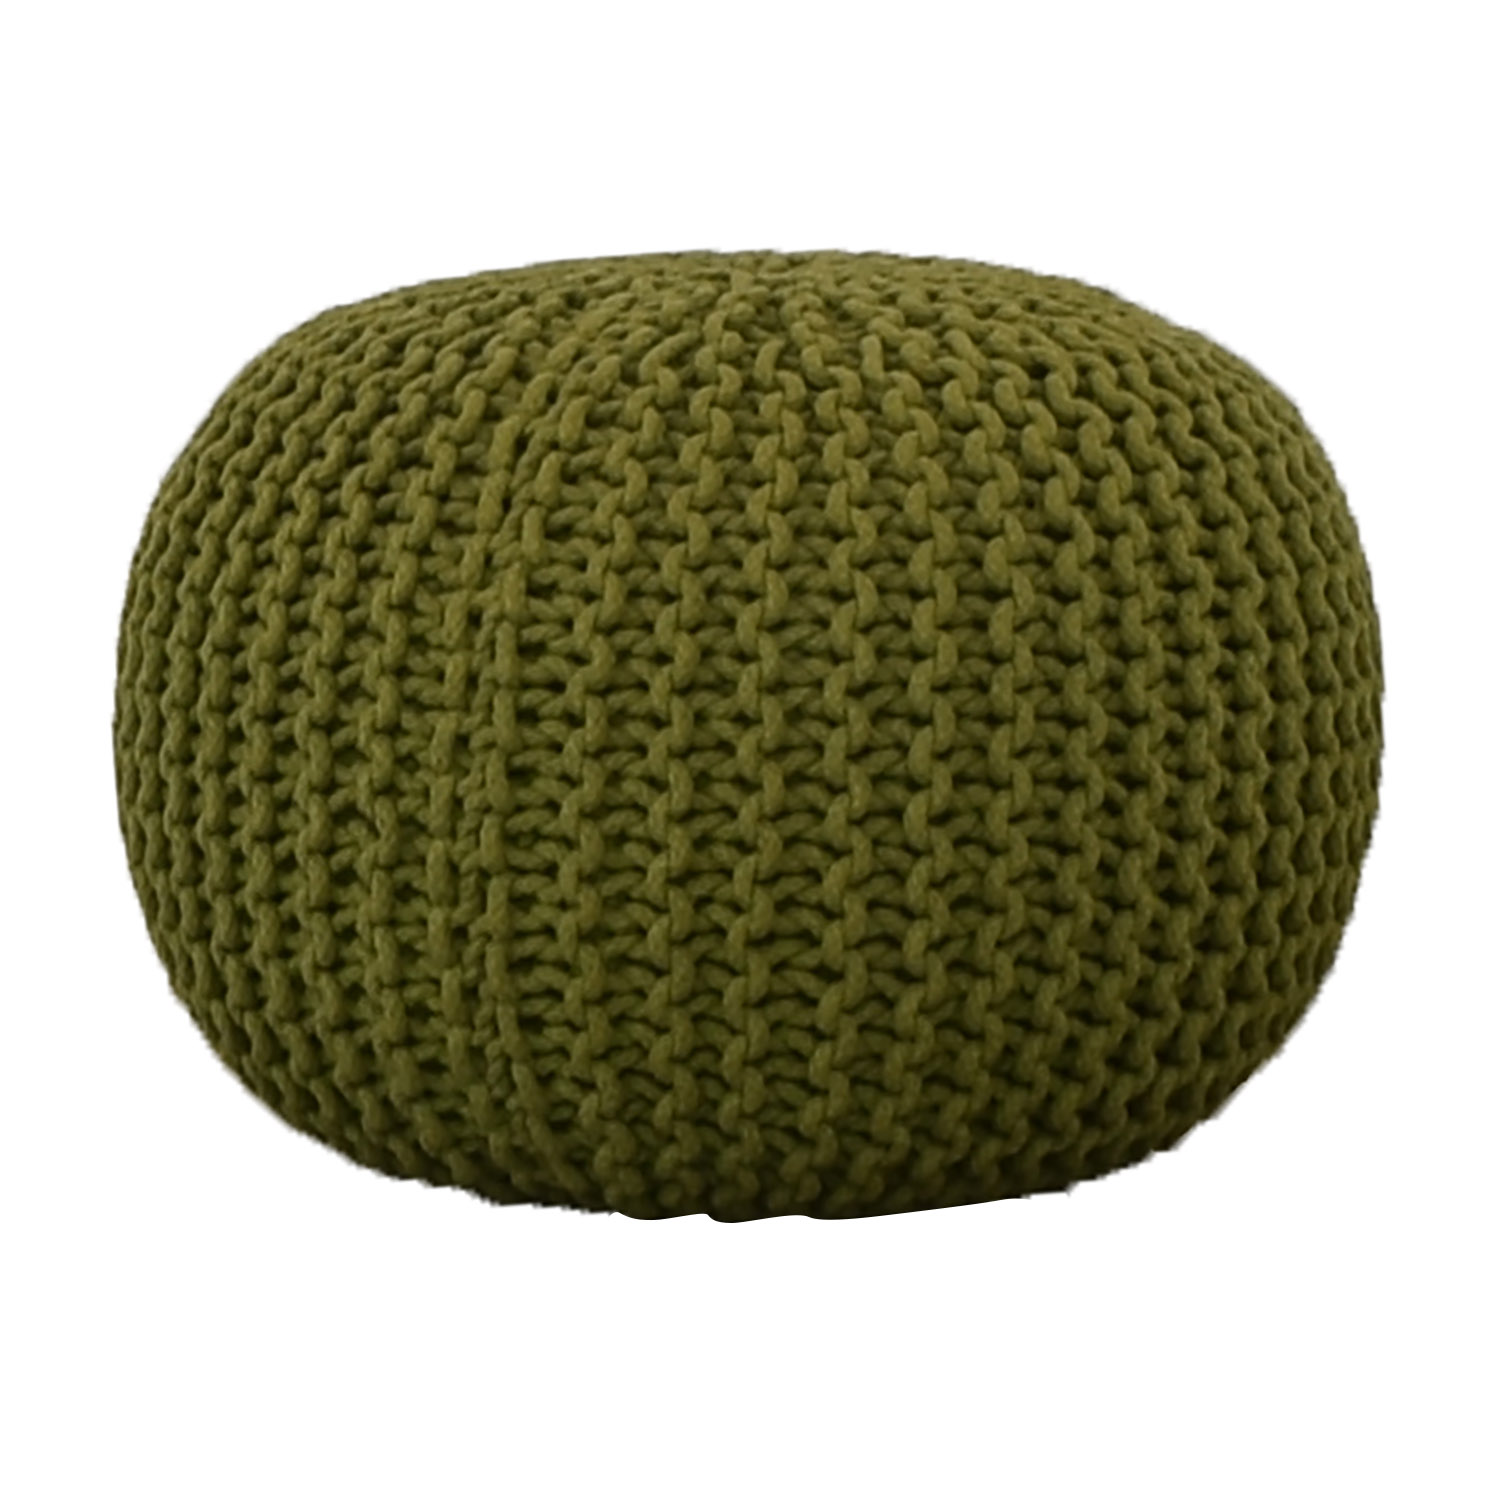 CB2 CB2 Green Rope Puff Ottoman Chairs